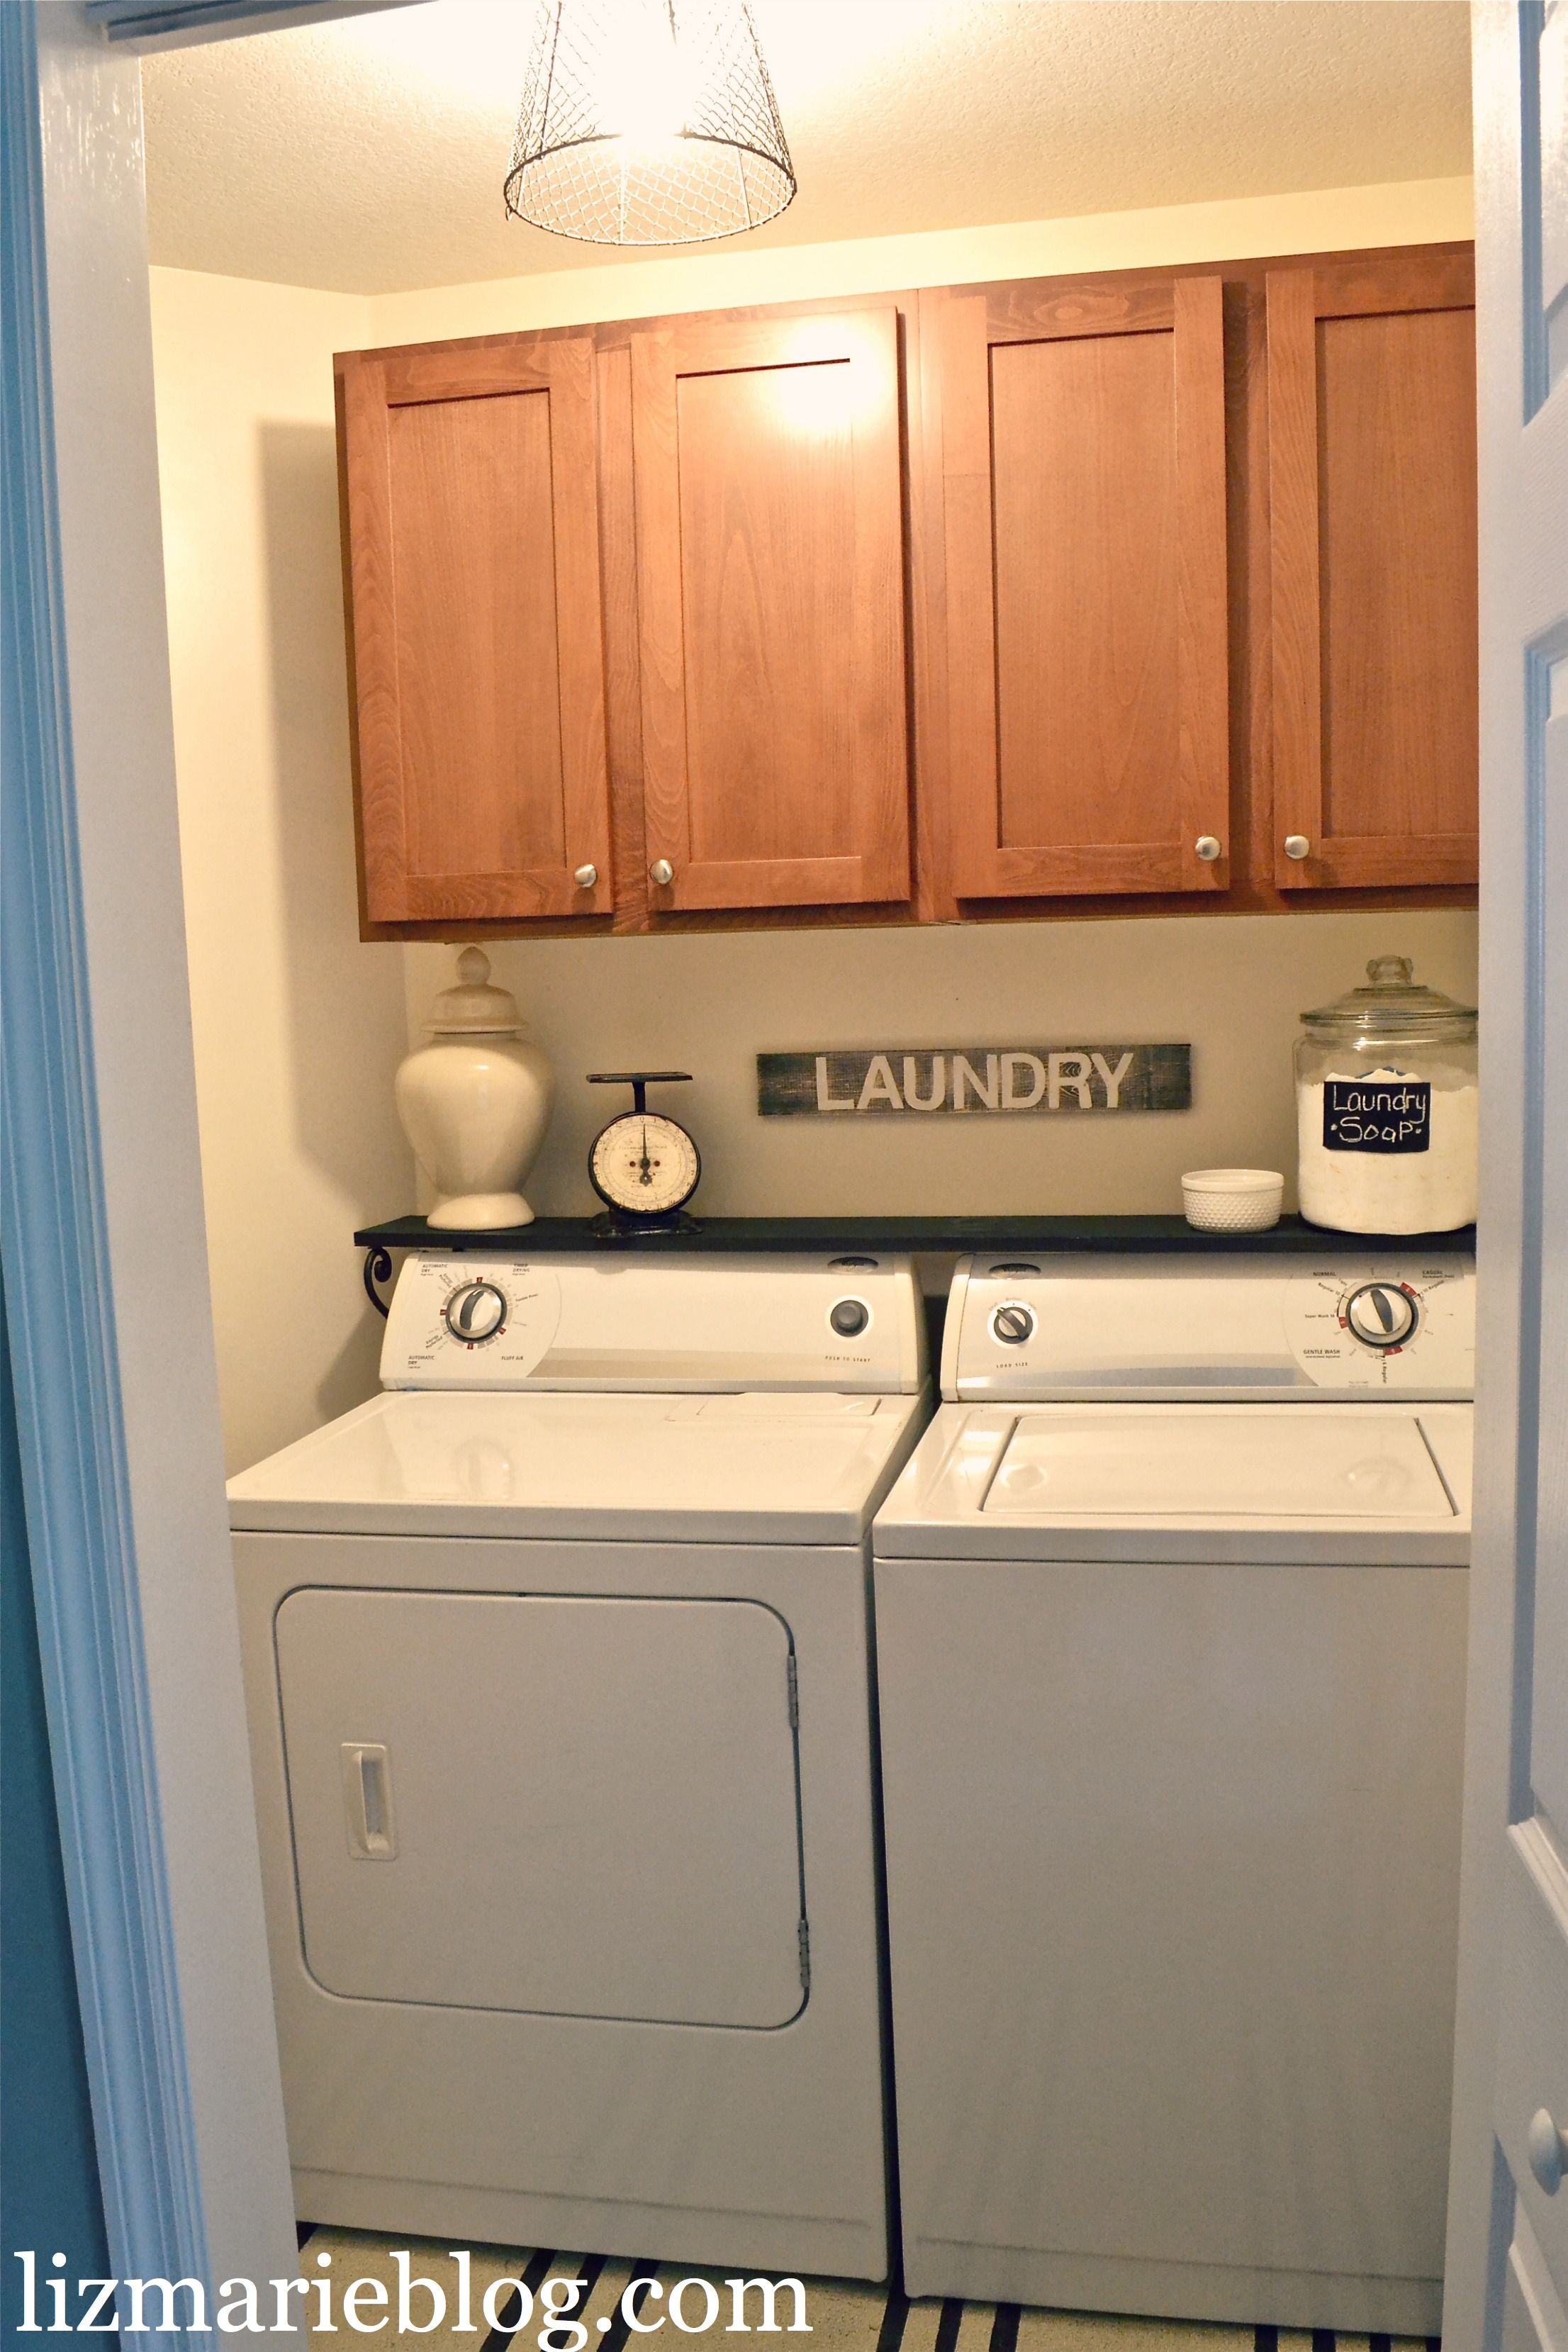 Laundry Room Makeover Laundry Room Organization Laundry Room Makeover Laundry Room Storage